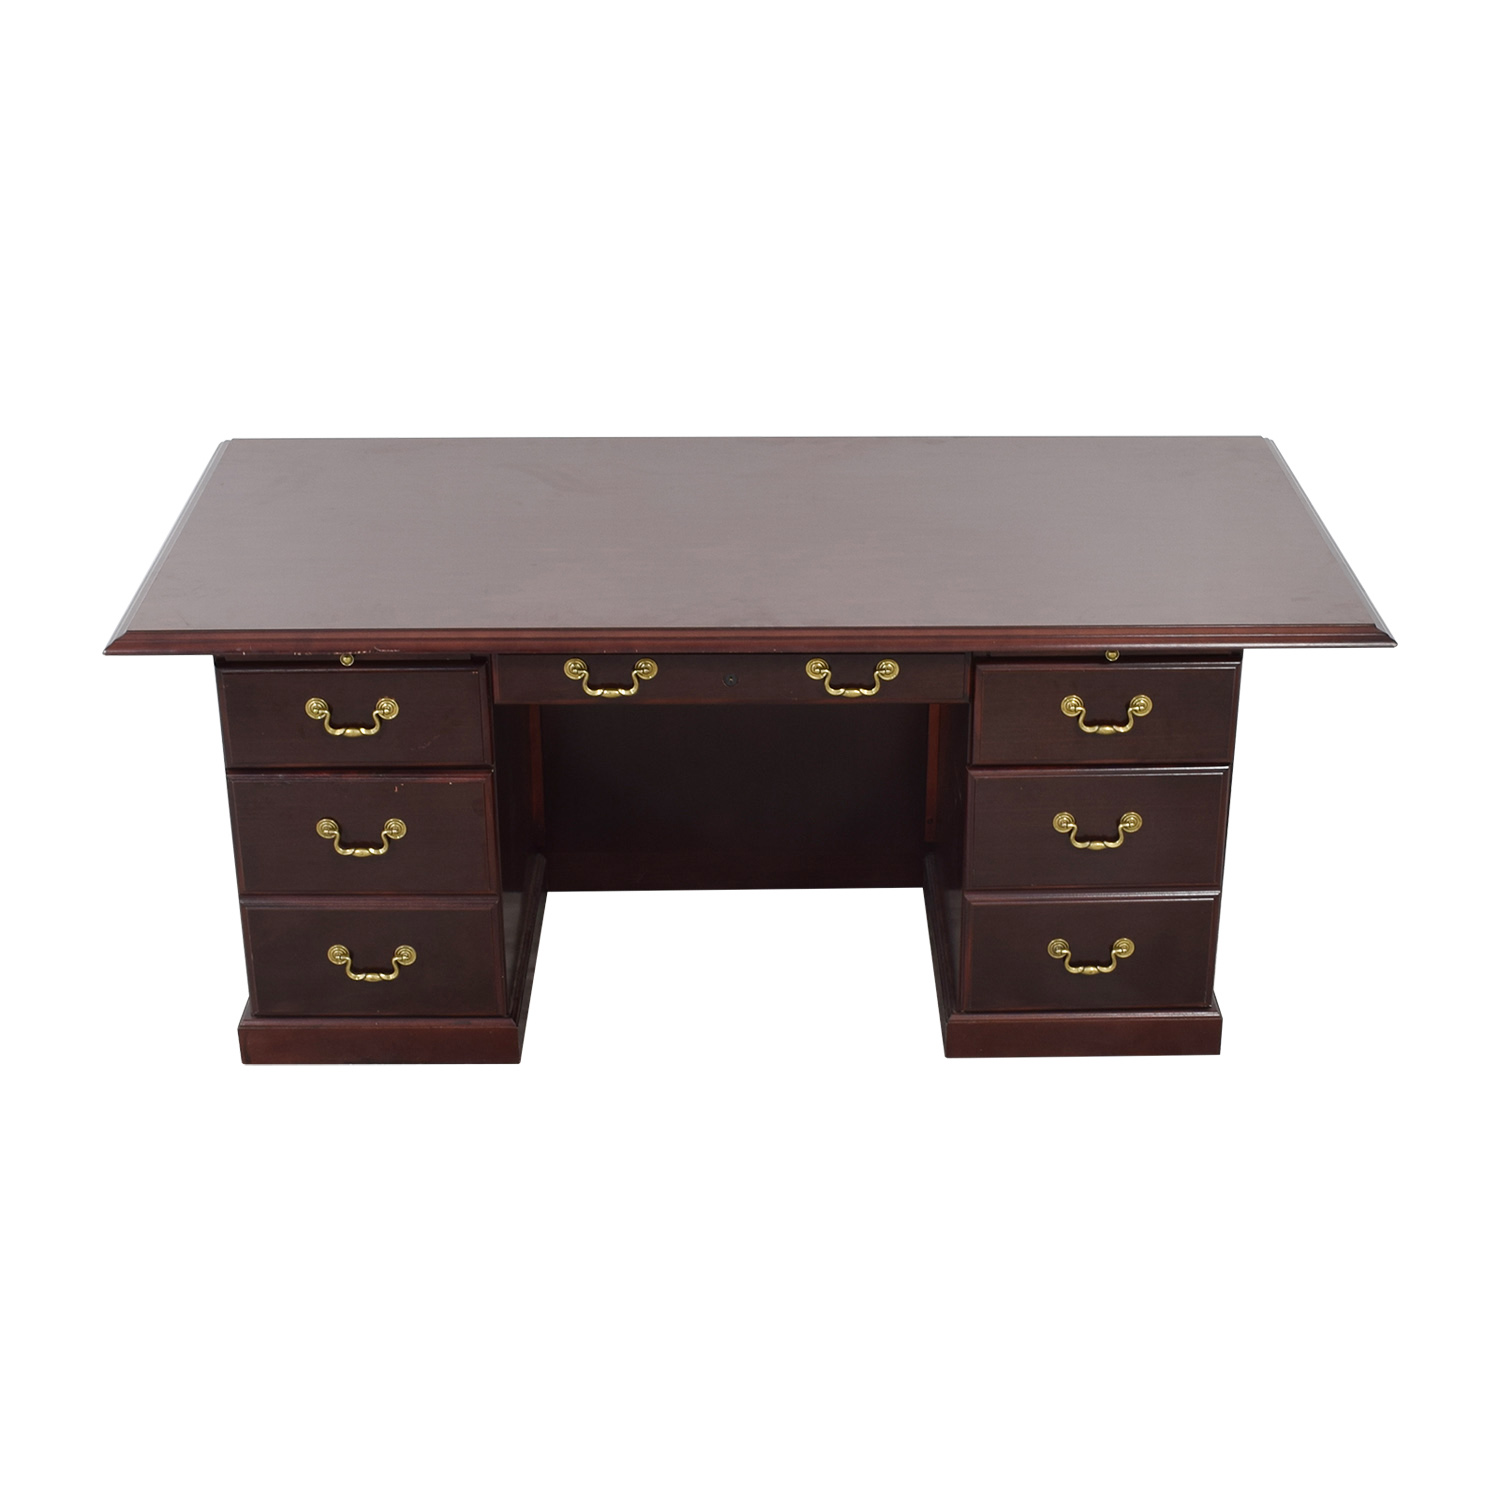 Mahogany Desk with Seven-Drawers nyc